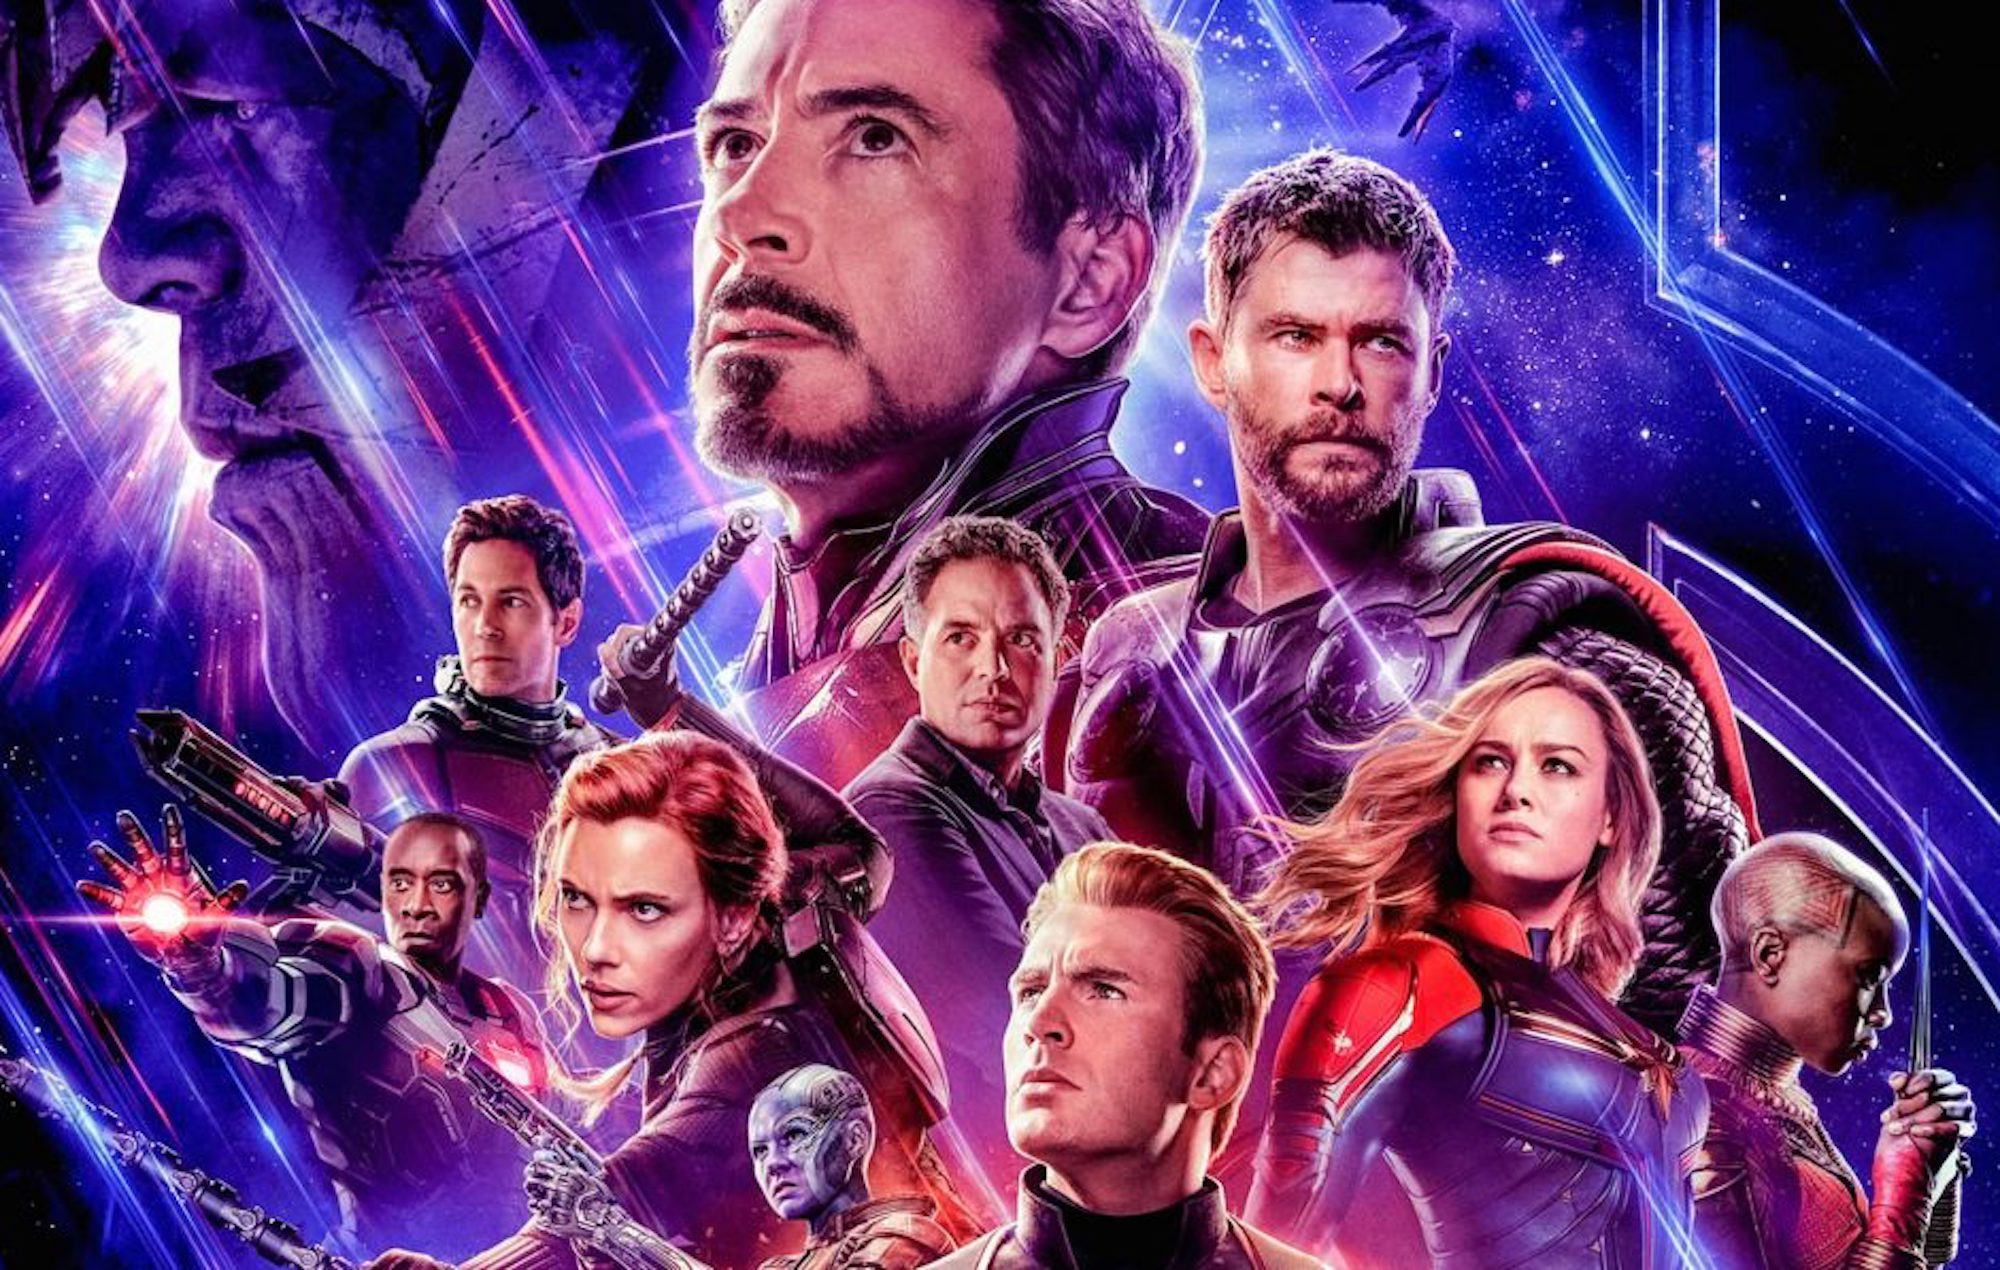 The Marvel Cinematic Universe's Movies, Ranked #22 to #1